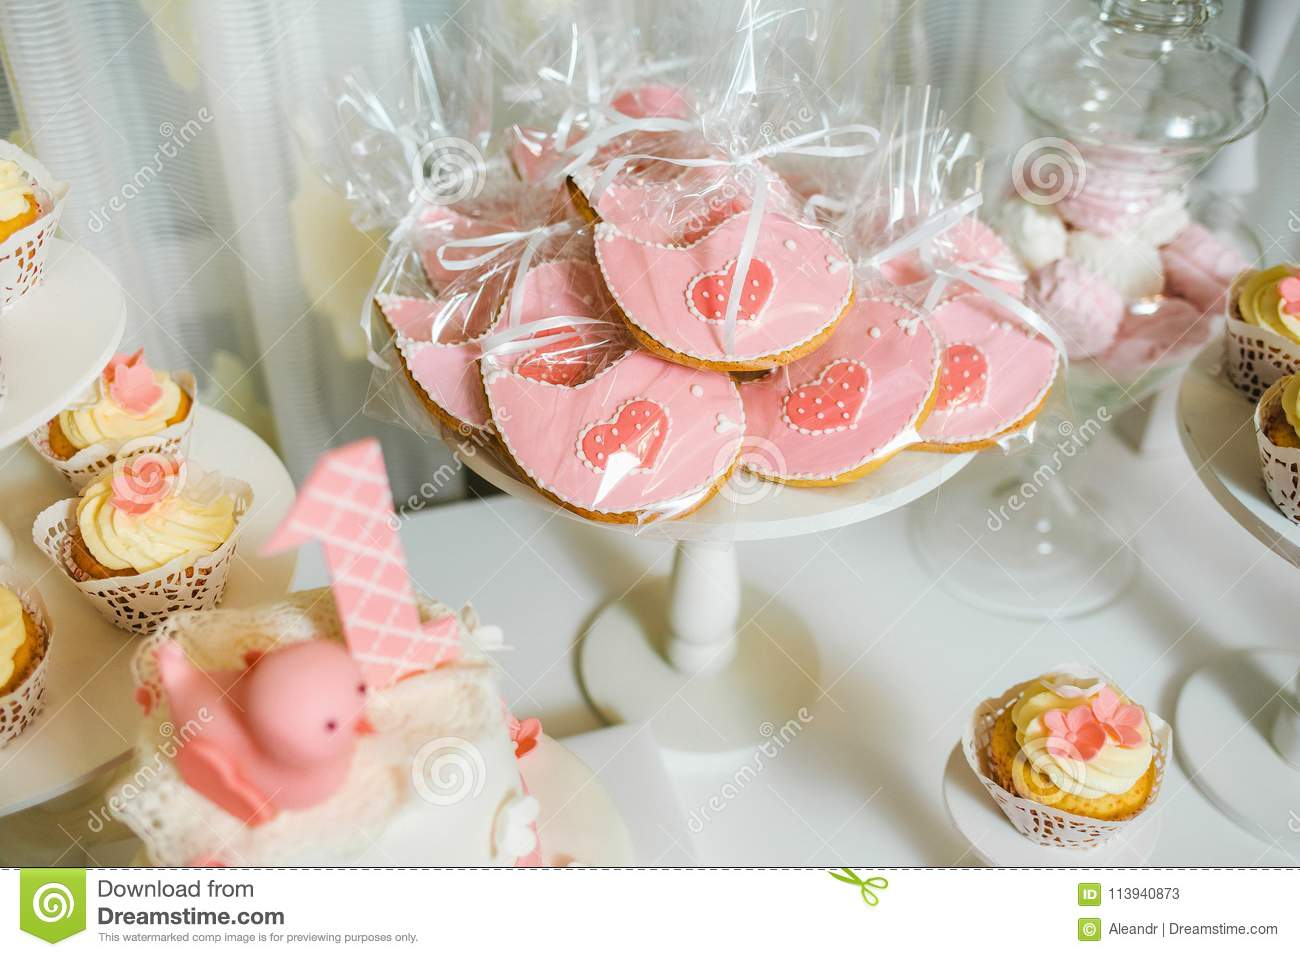 Catering For Birthday Party Stock Image Image Of Arrangement Dessert 113940873